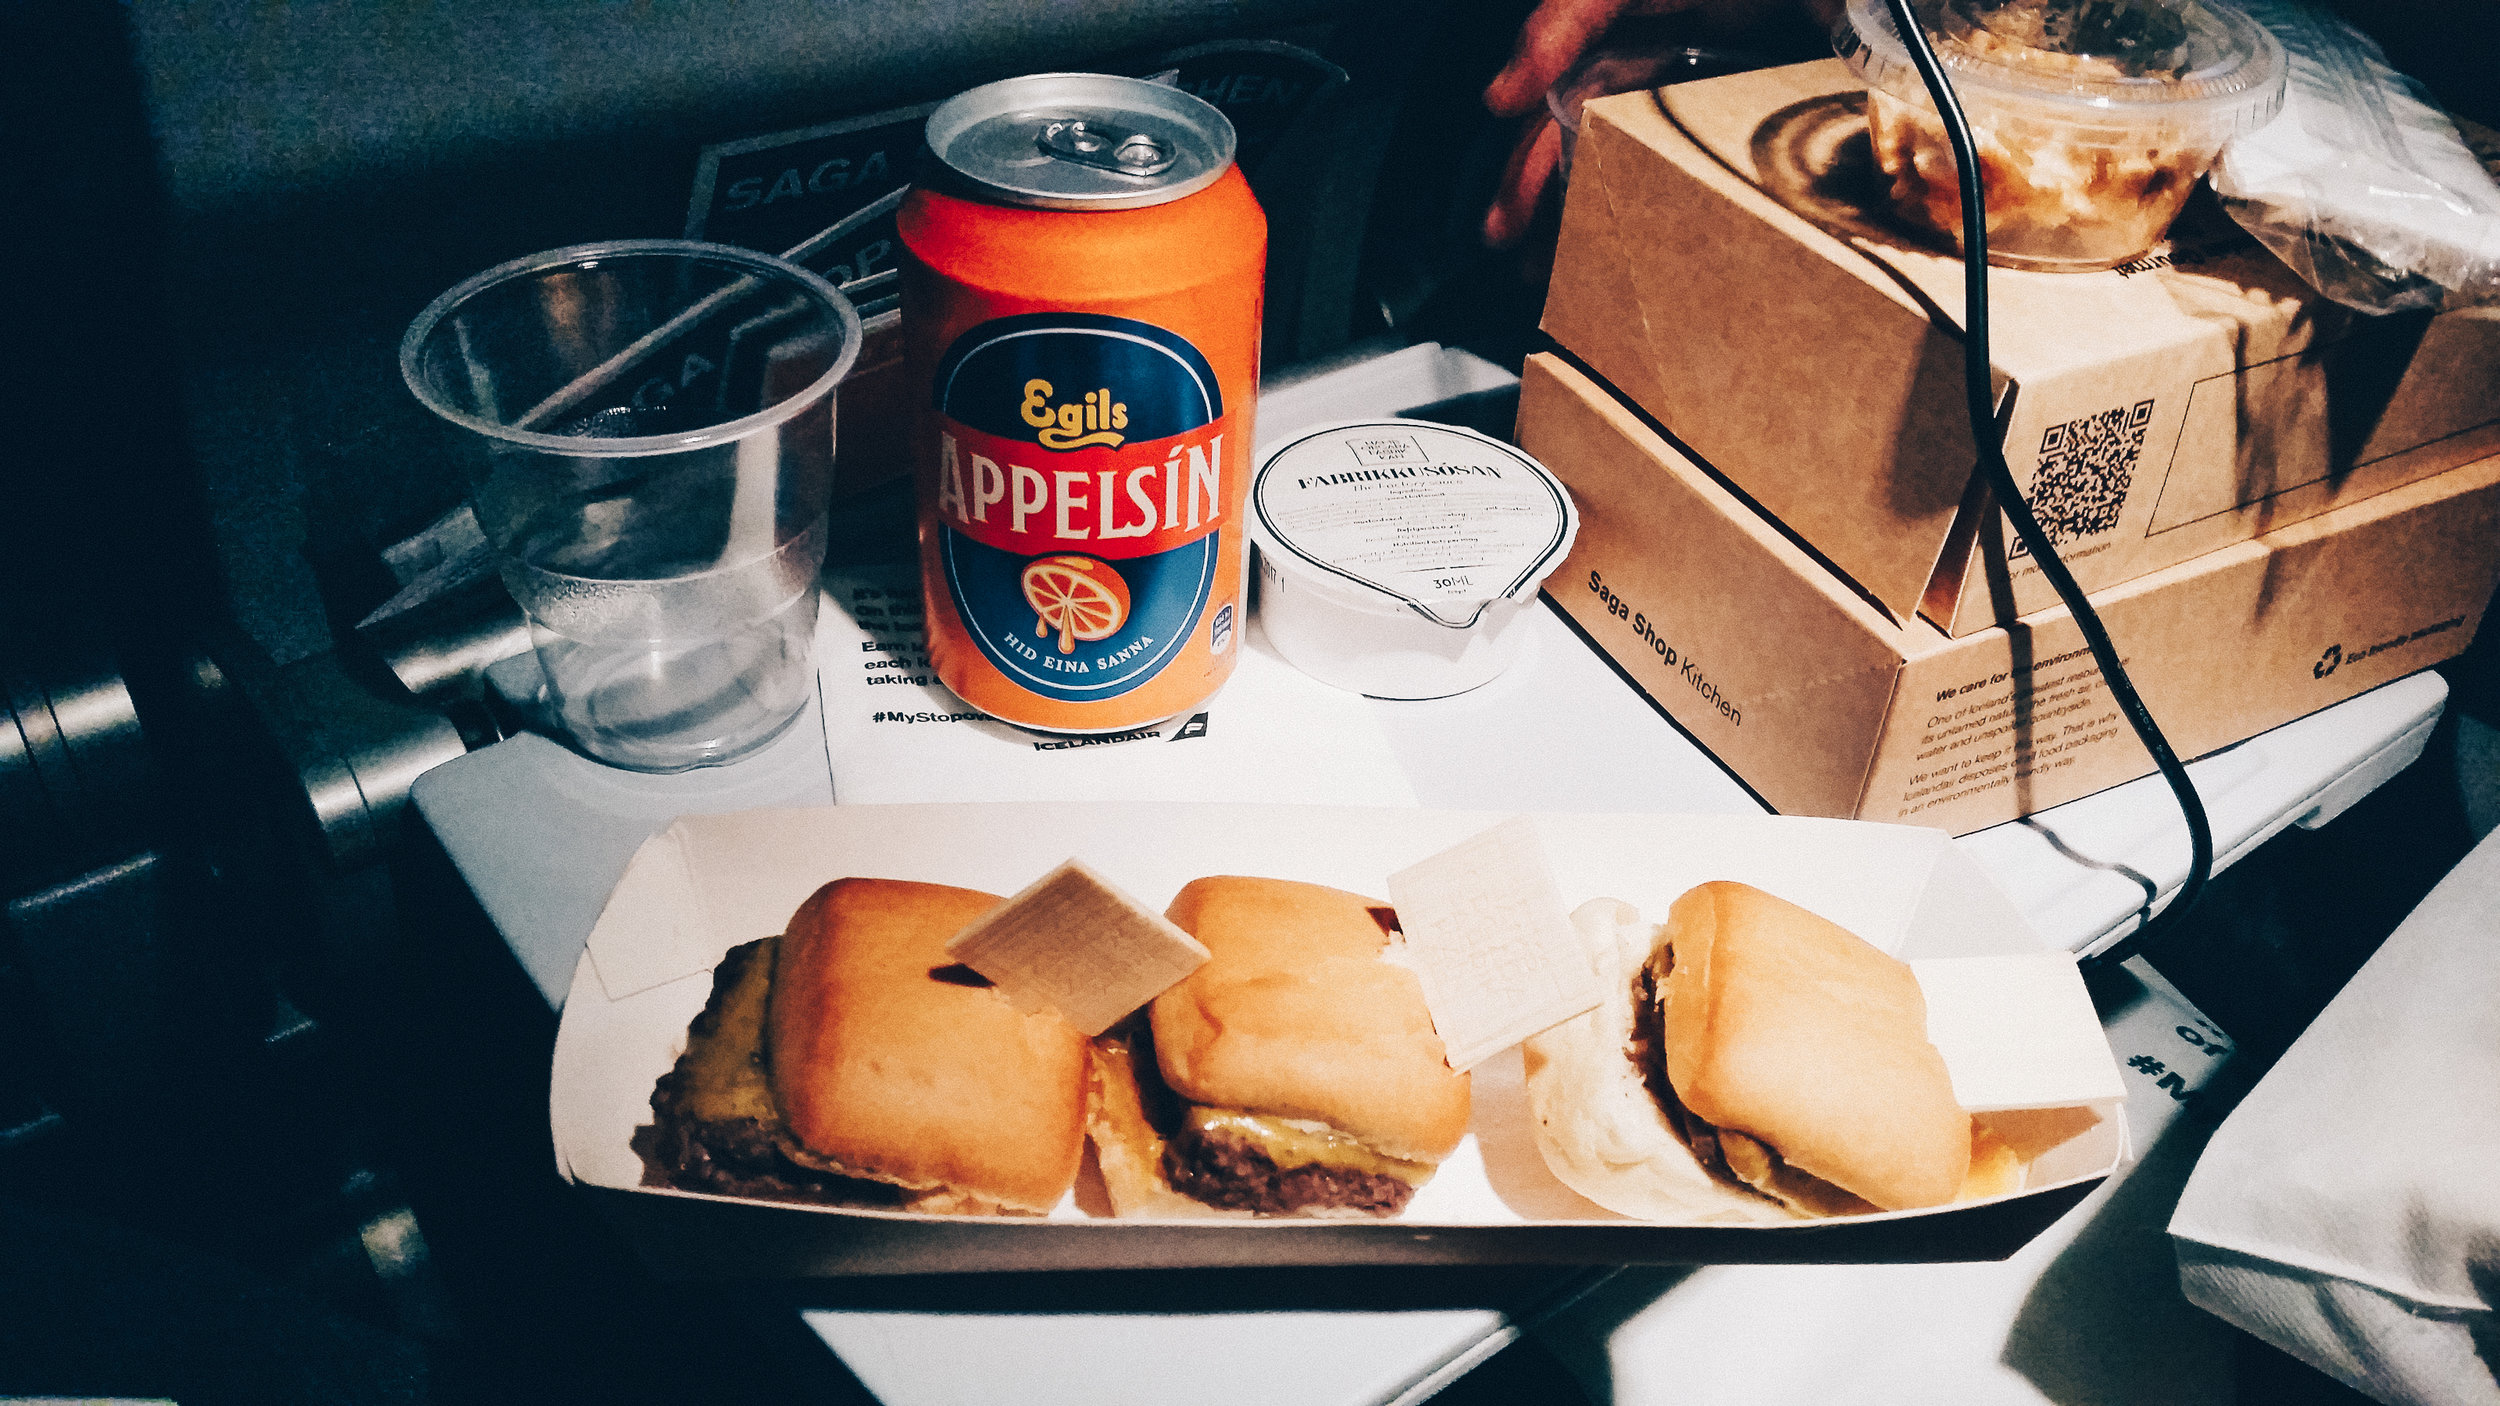 Whilst the sliders left something to be desired (doesn't all aeroplane food?) my first true love is Appelsín.